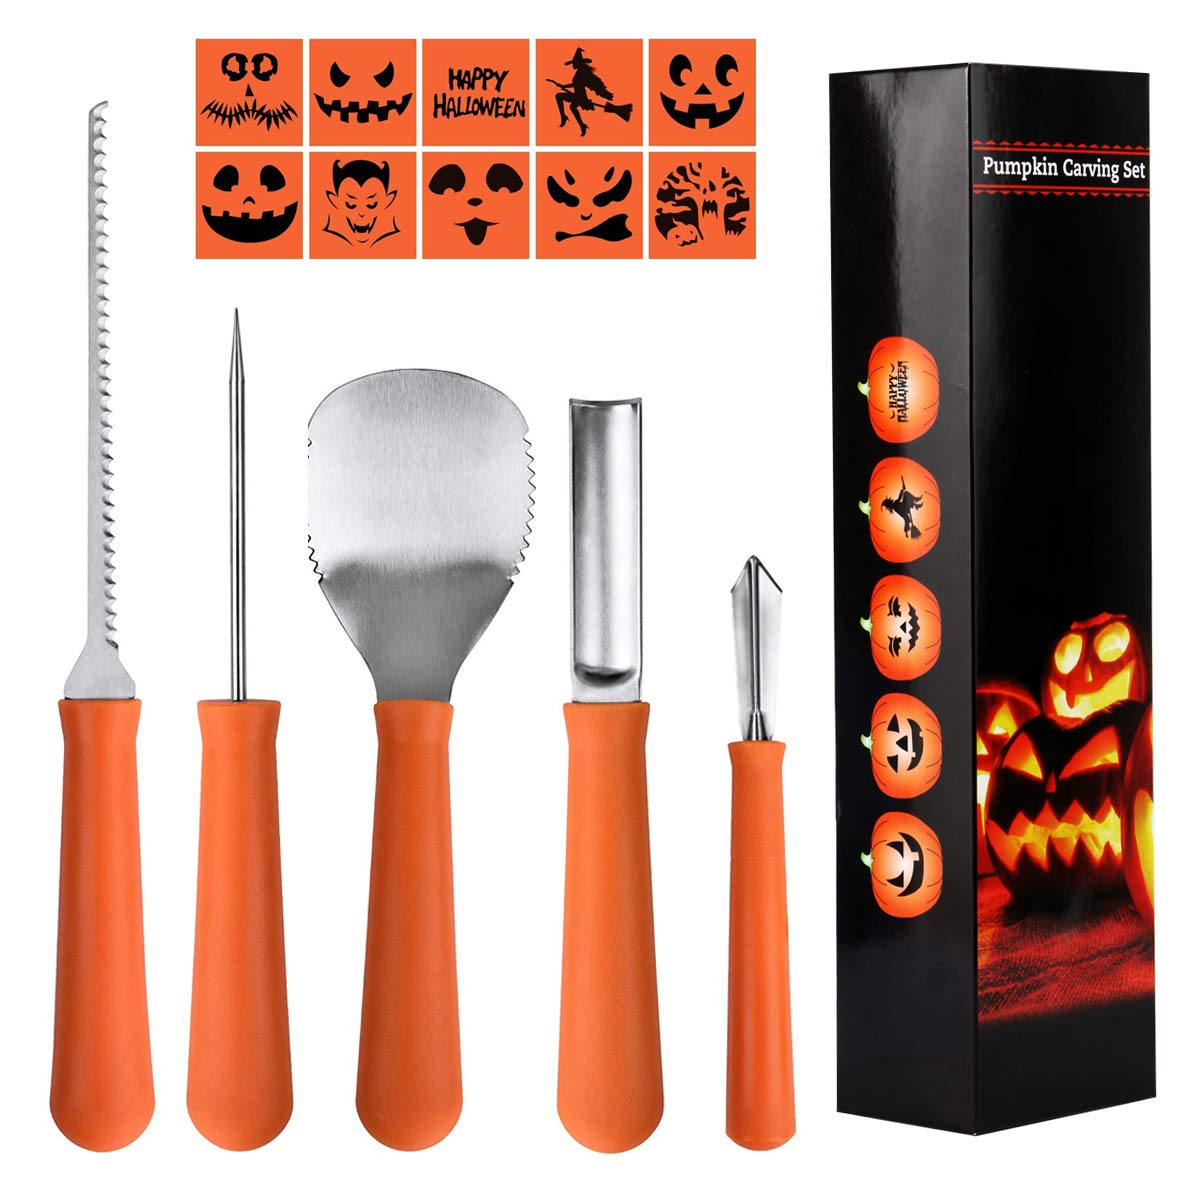 Epartswide Pumpkin Carving Kit 5 Piece Halloween Pumpkin Carving Tool Kit with 10 Carving Stencils DIY Halloween Jack-O-Lantern For Family Activity